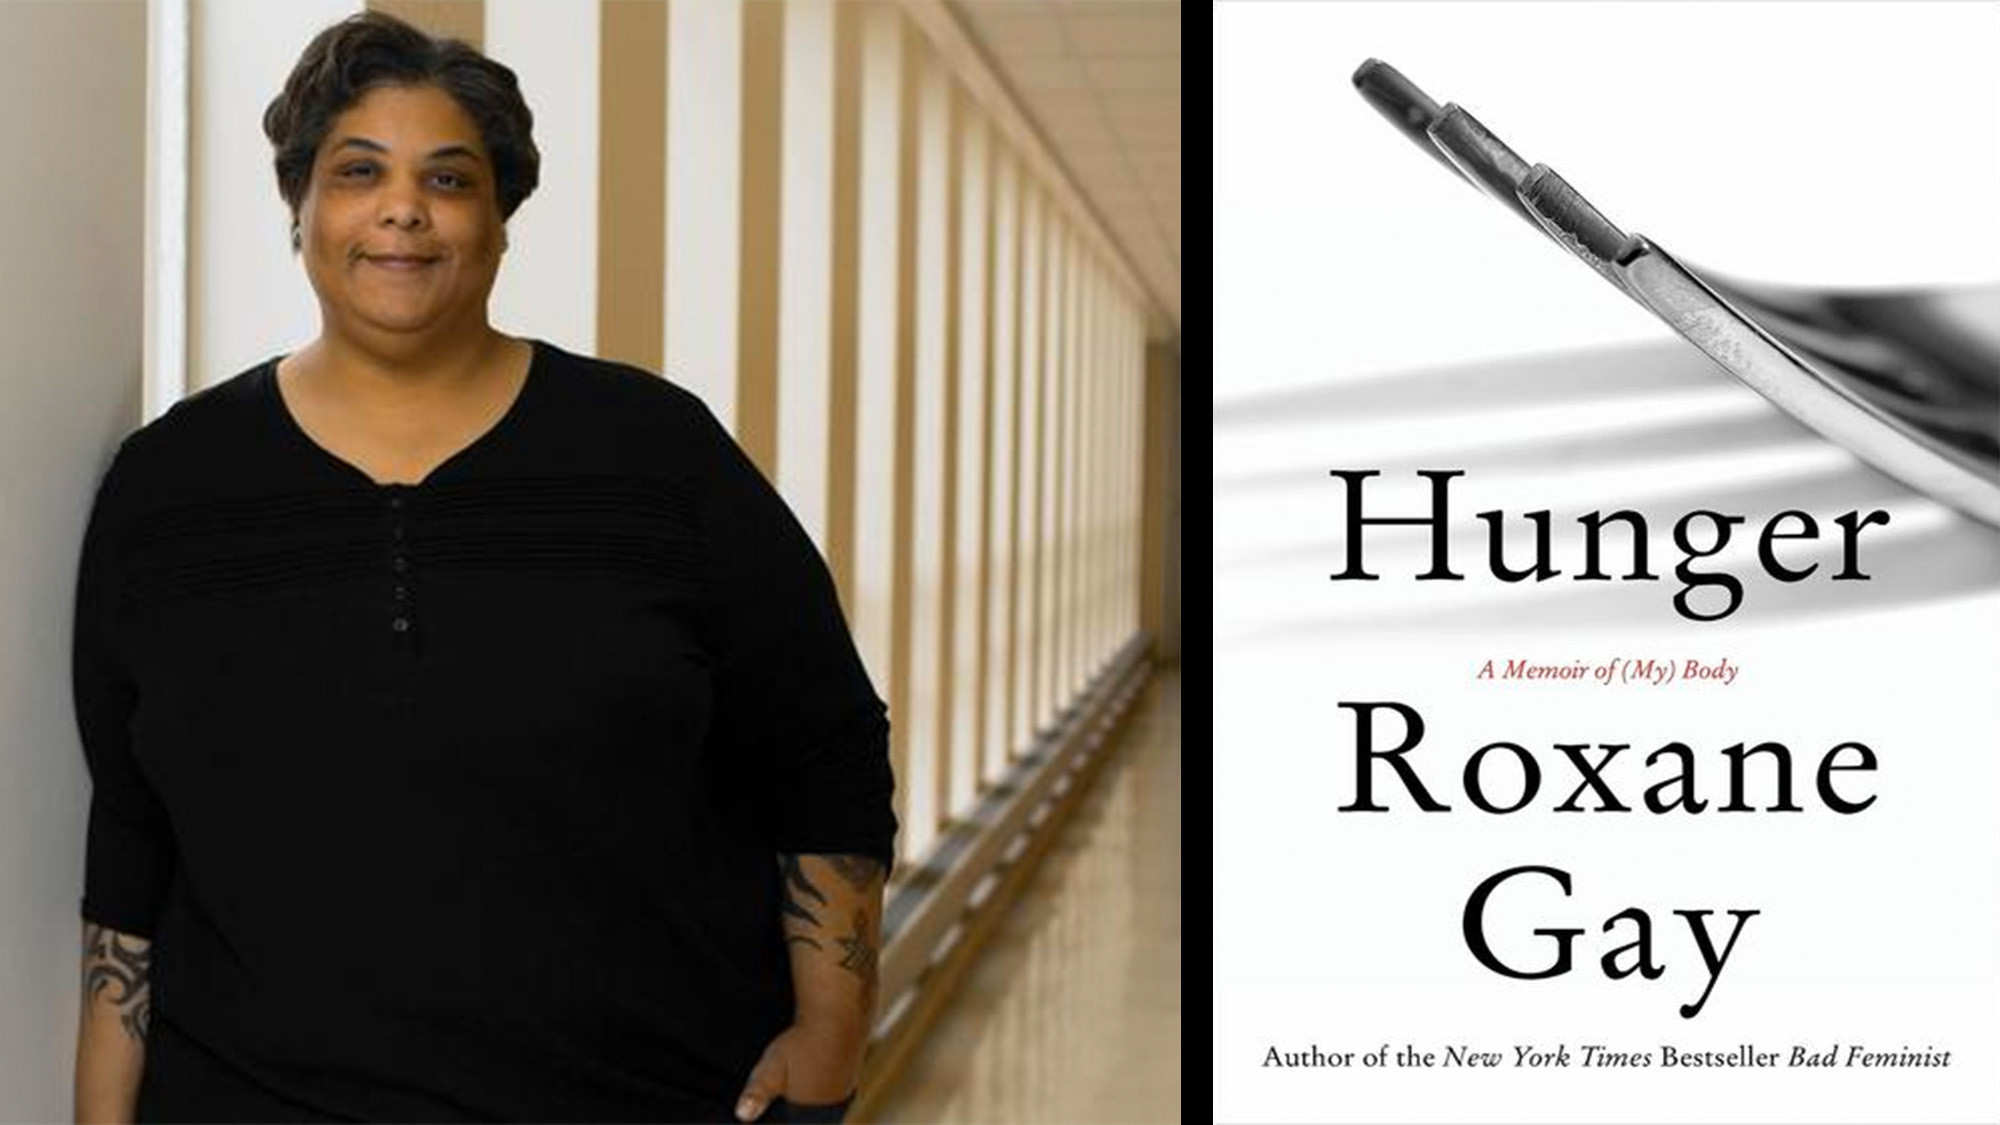 book, roxane gay, hunger